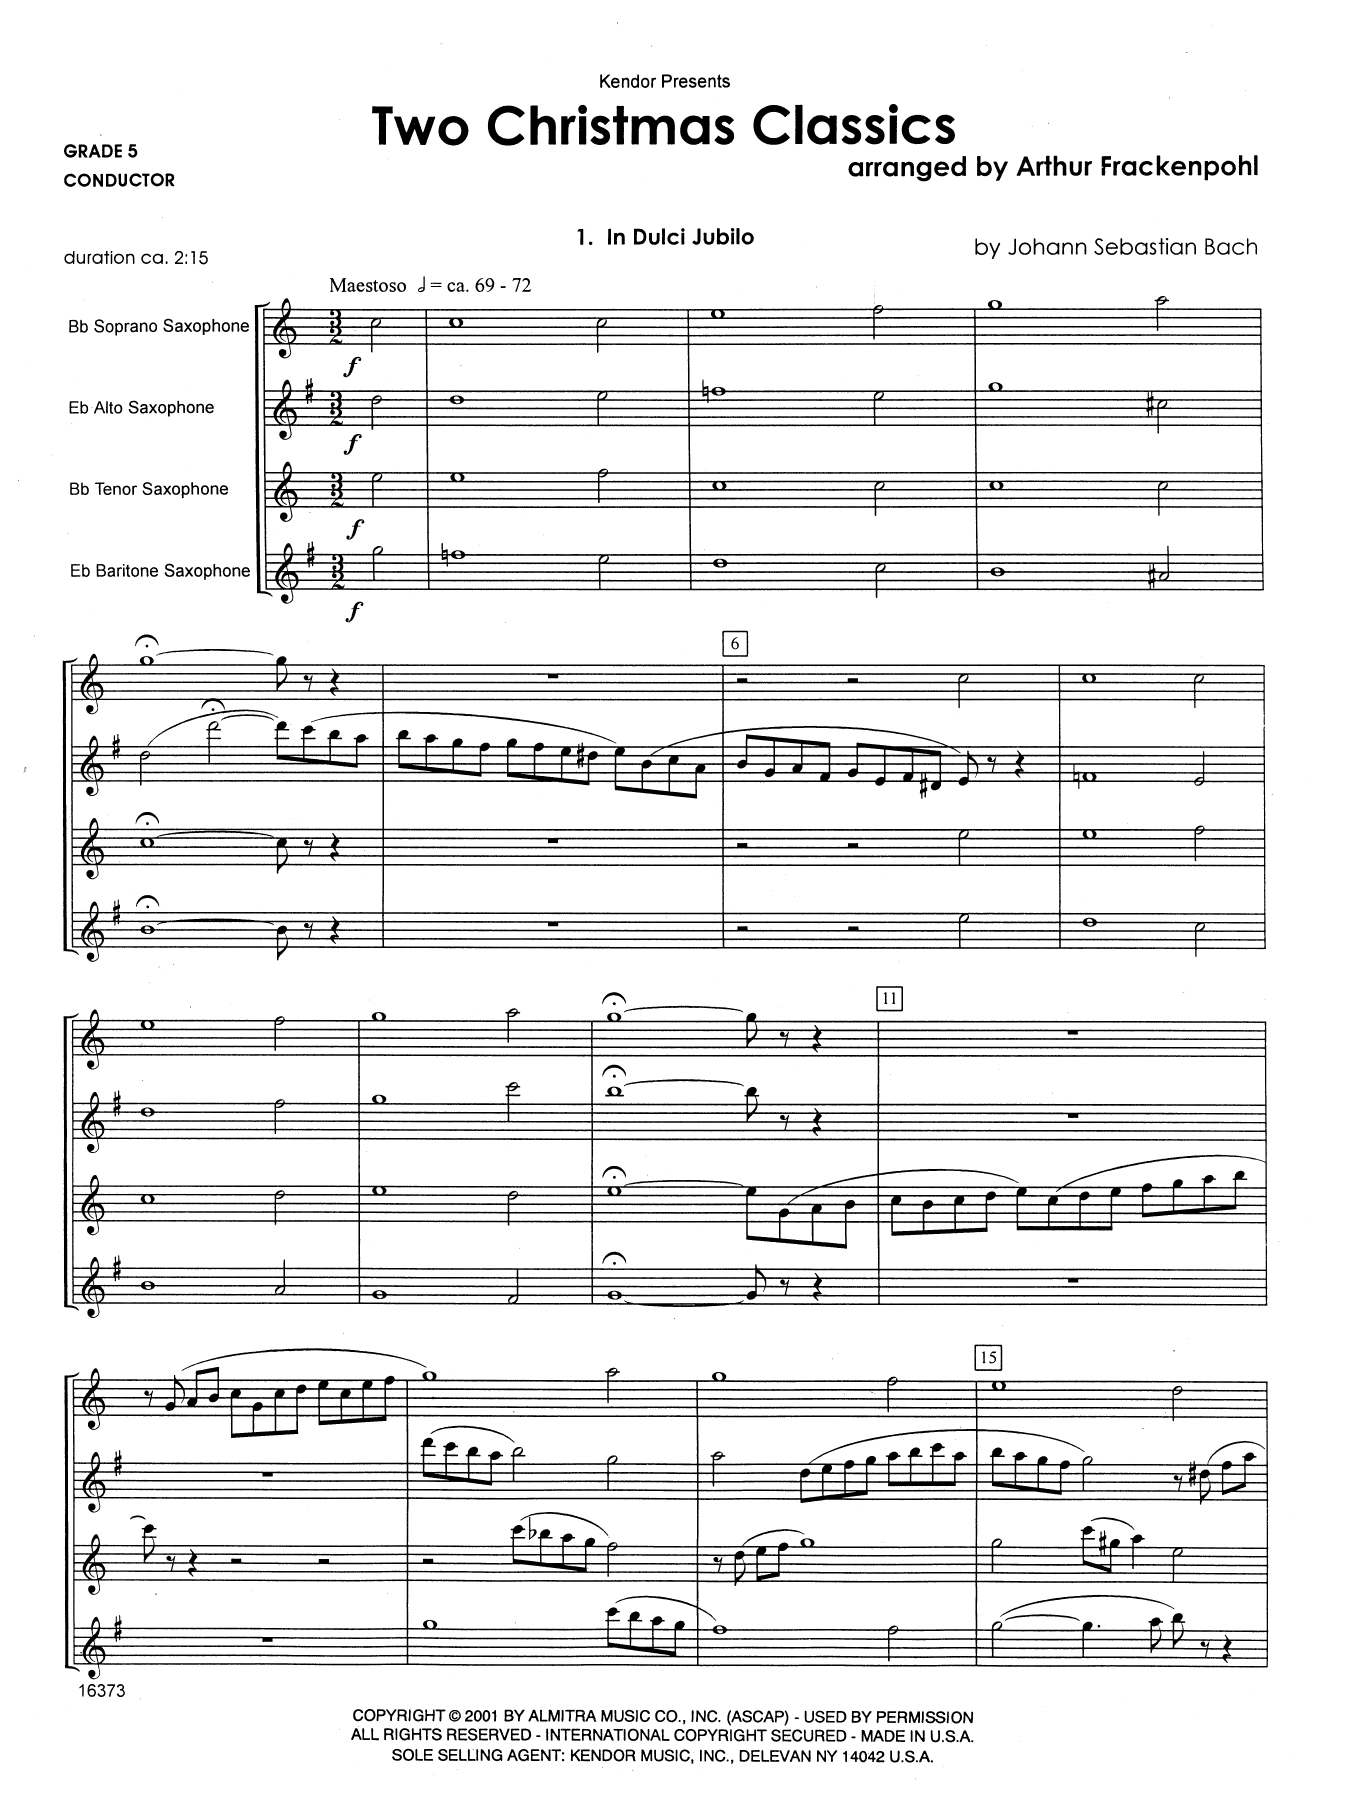 Two Christmas Classics (COMPLETE) sheet music for saxophone quartet by Arthur Frackenpohl